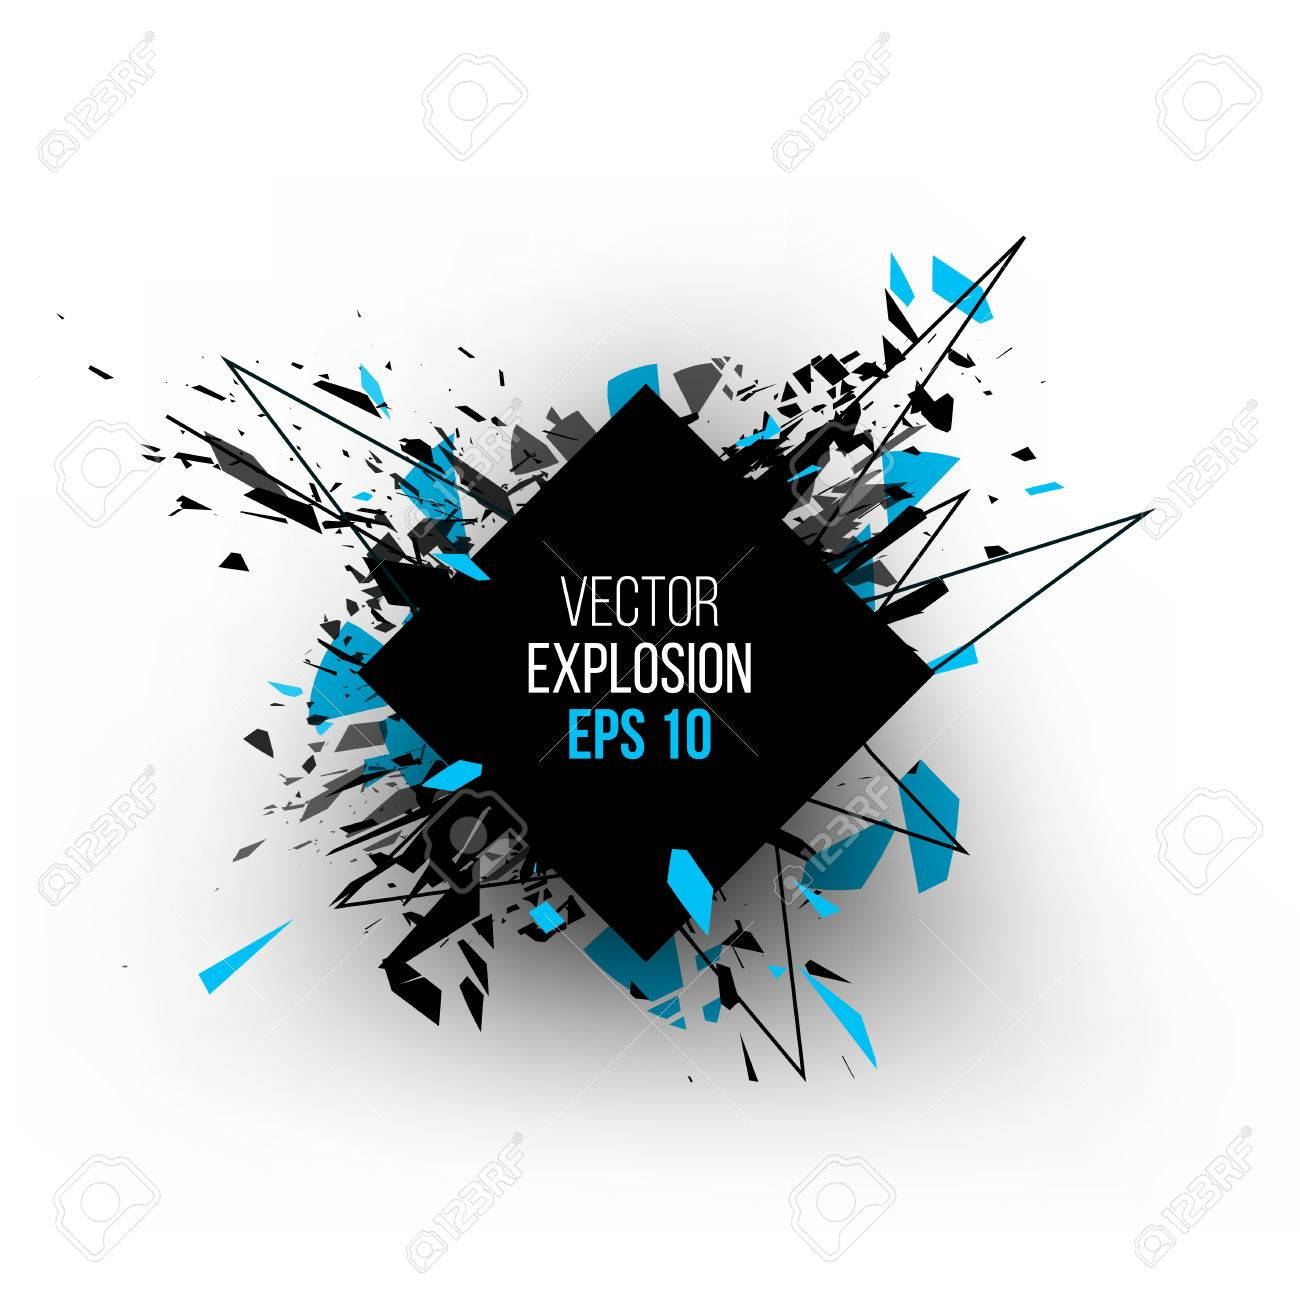 Abstract explosion cloud of black glass pieces on white background for design template with circle. Grunge vector illustration. - 57758726